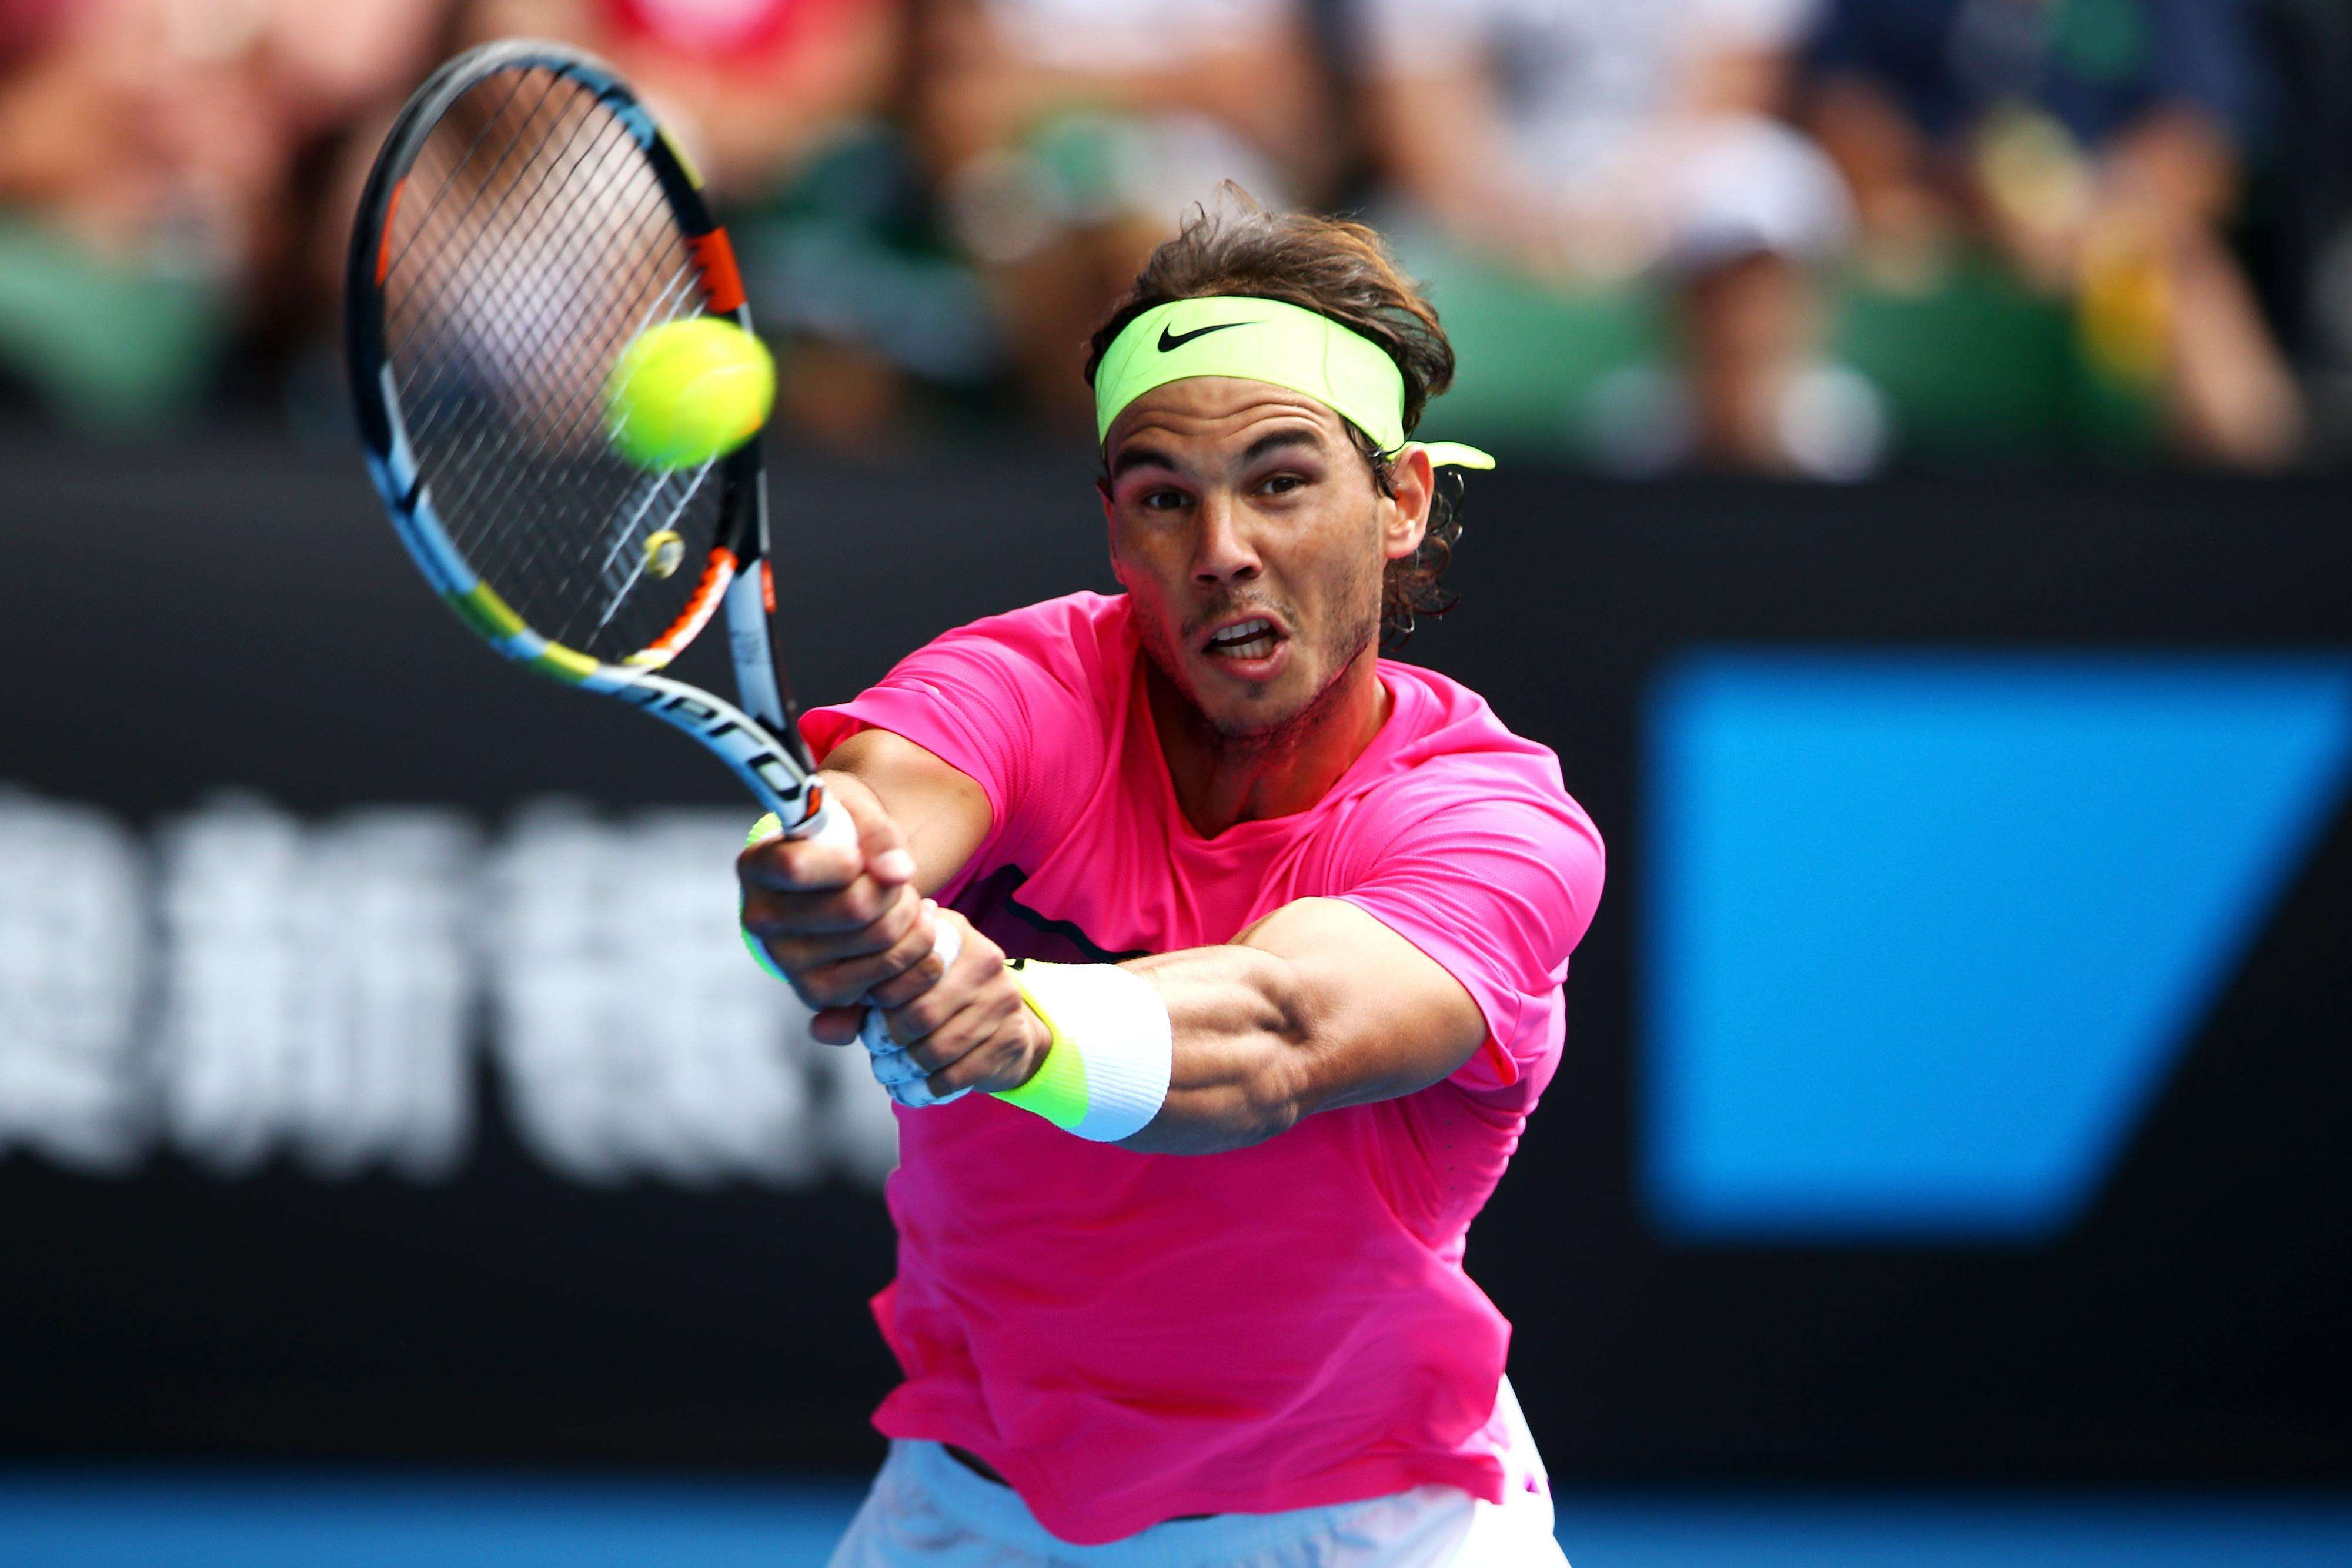 Nadal avanza a cuartos de final Foto: Getty Images